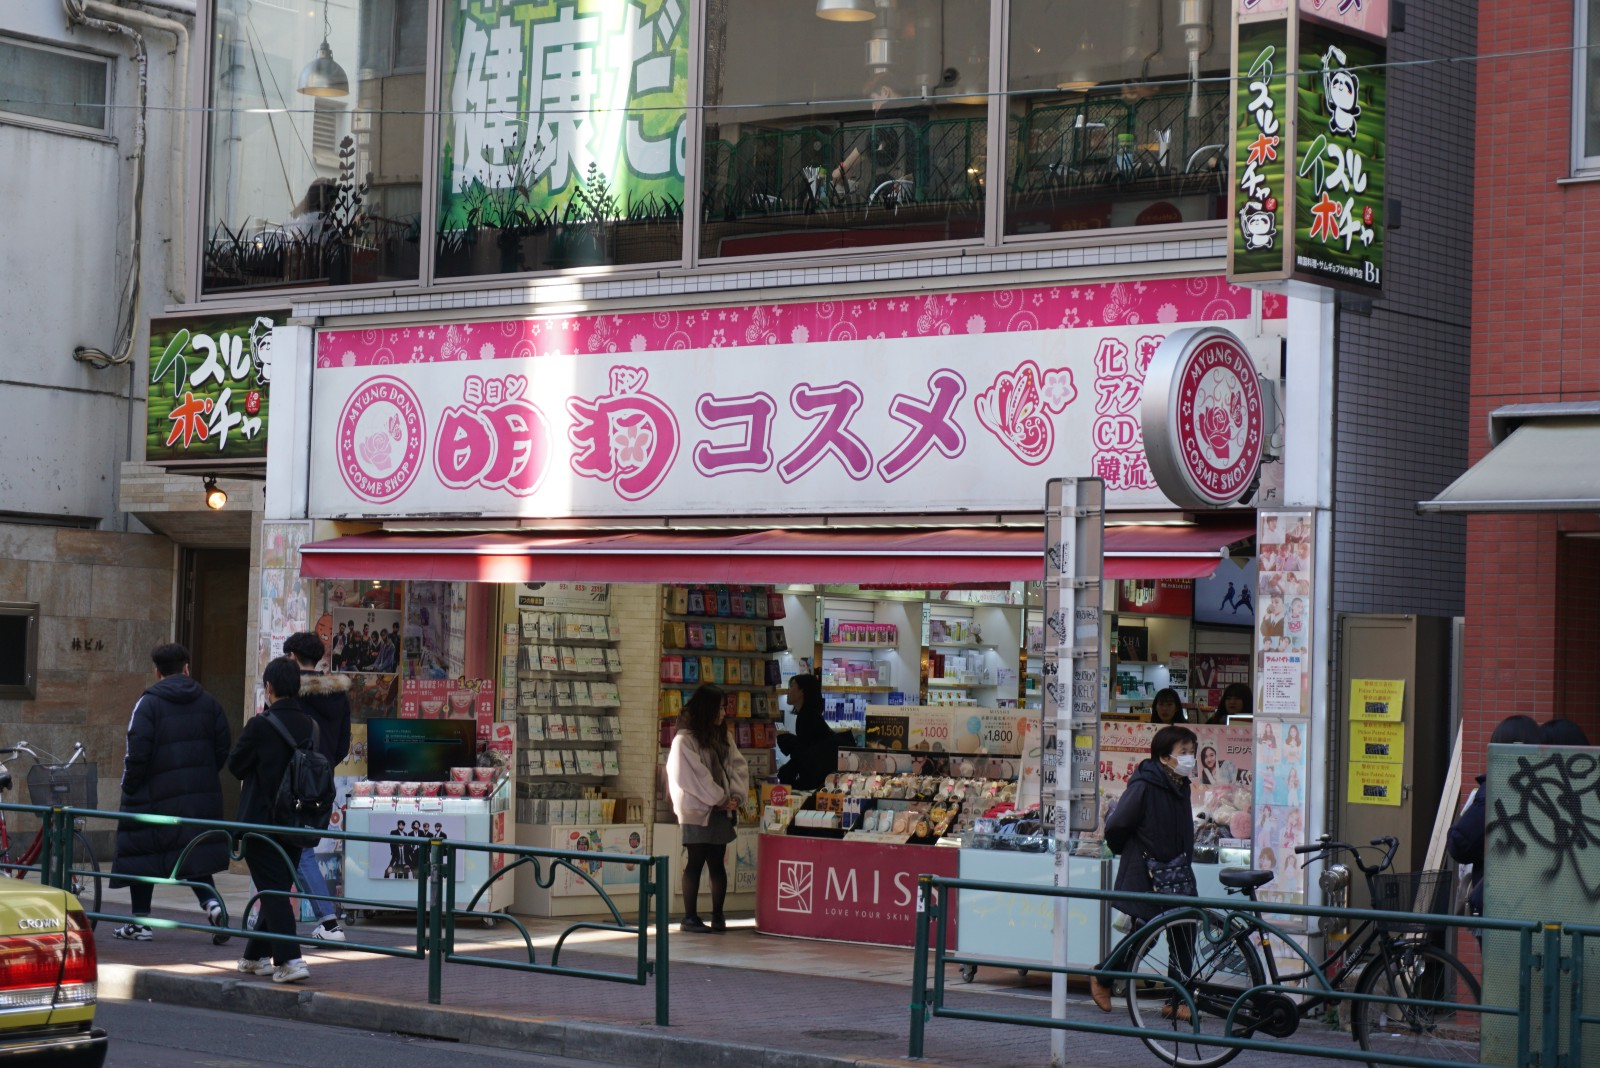 6d66f92eb8 In Japan, Korean beauty products including makeup and skin care are as  common as Japanese products today, and you can shop them at many stores and  online ...